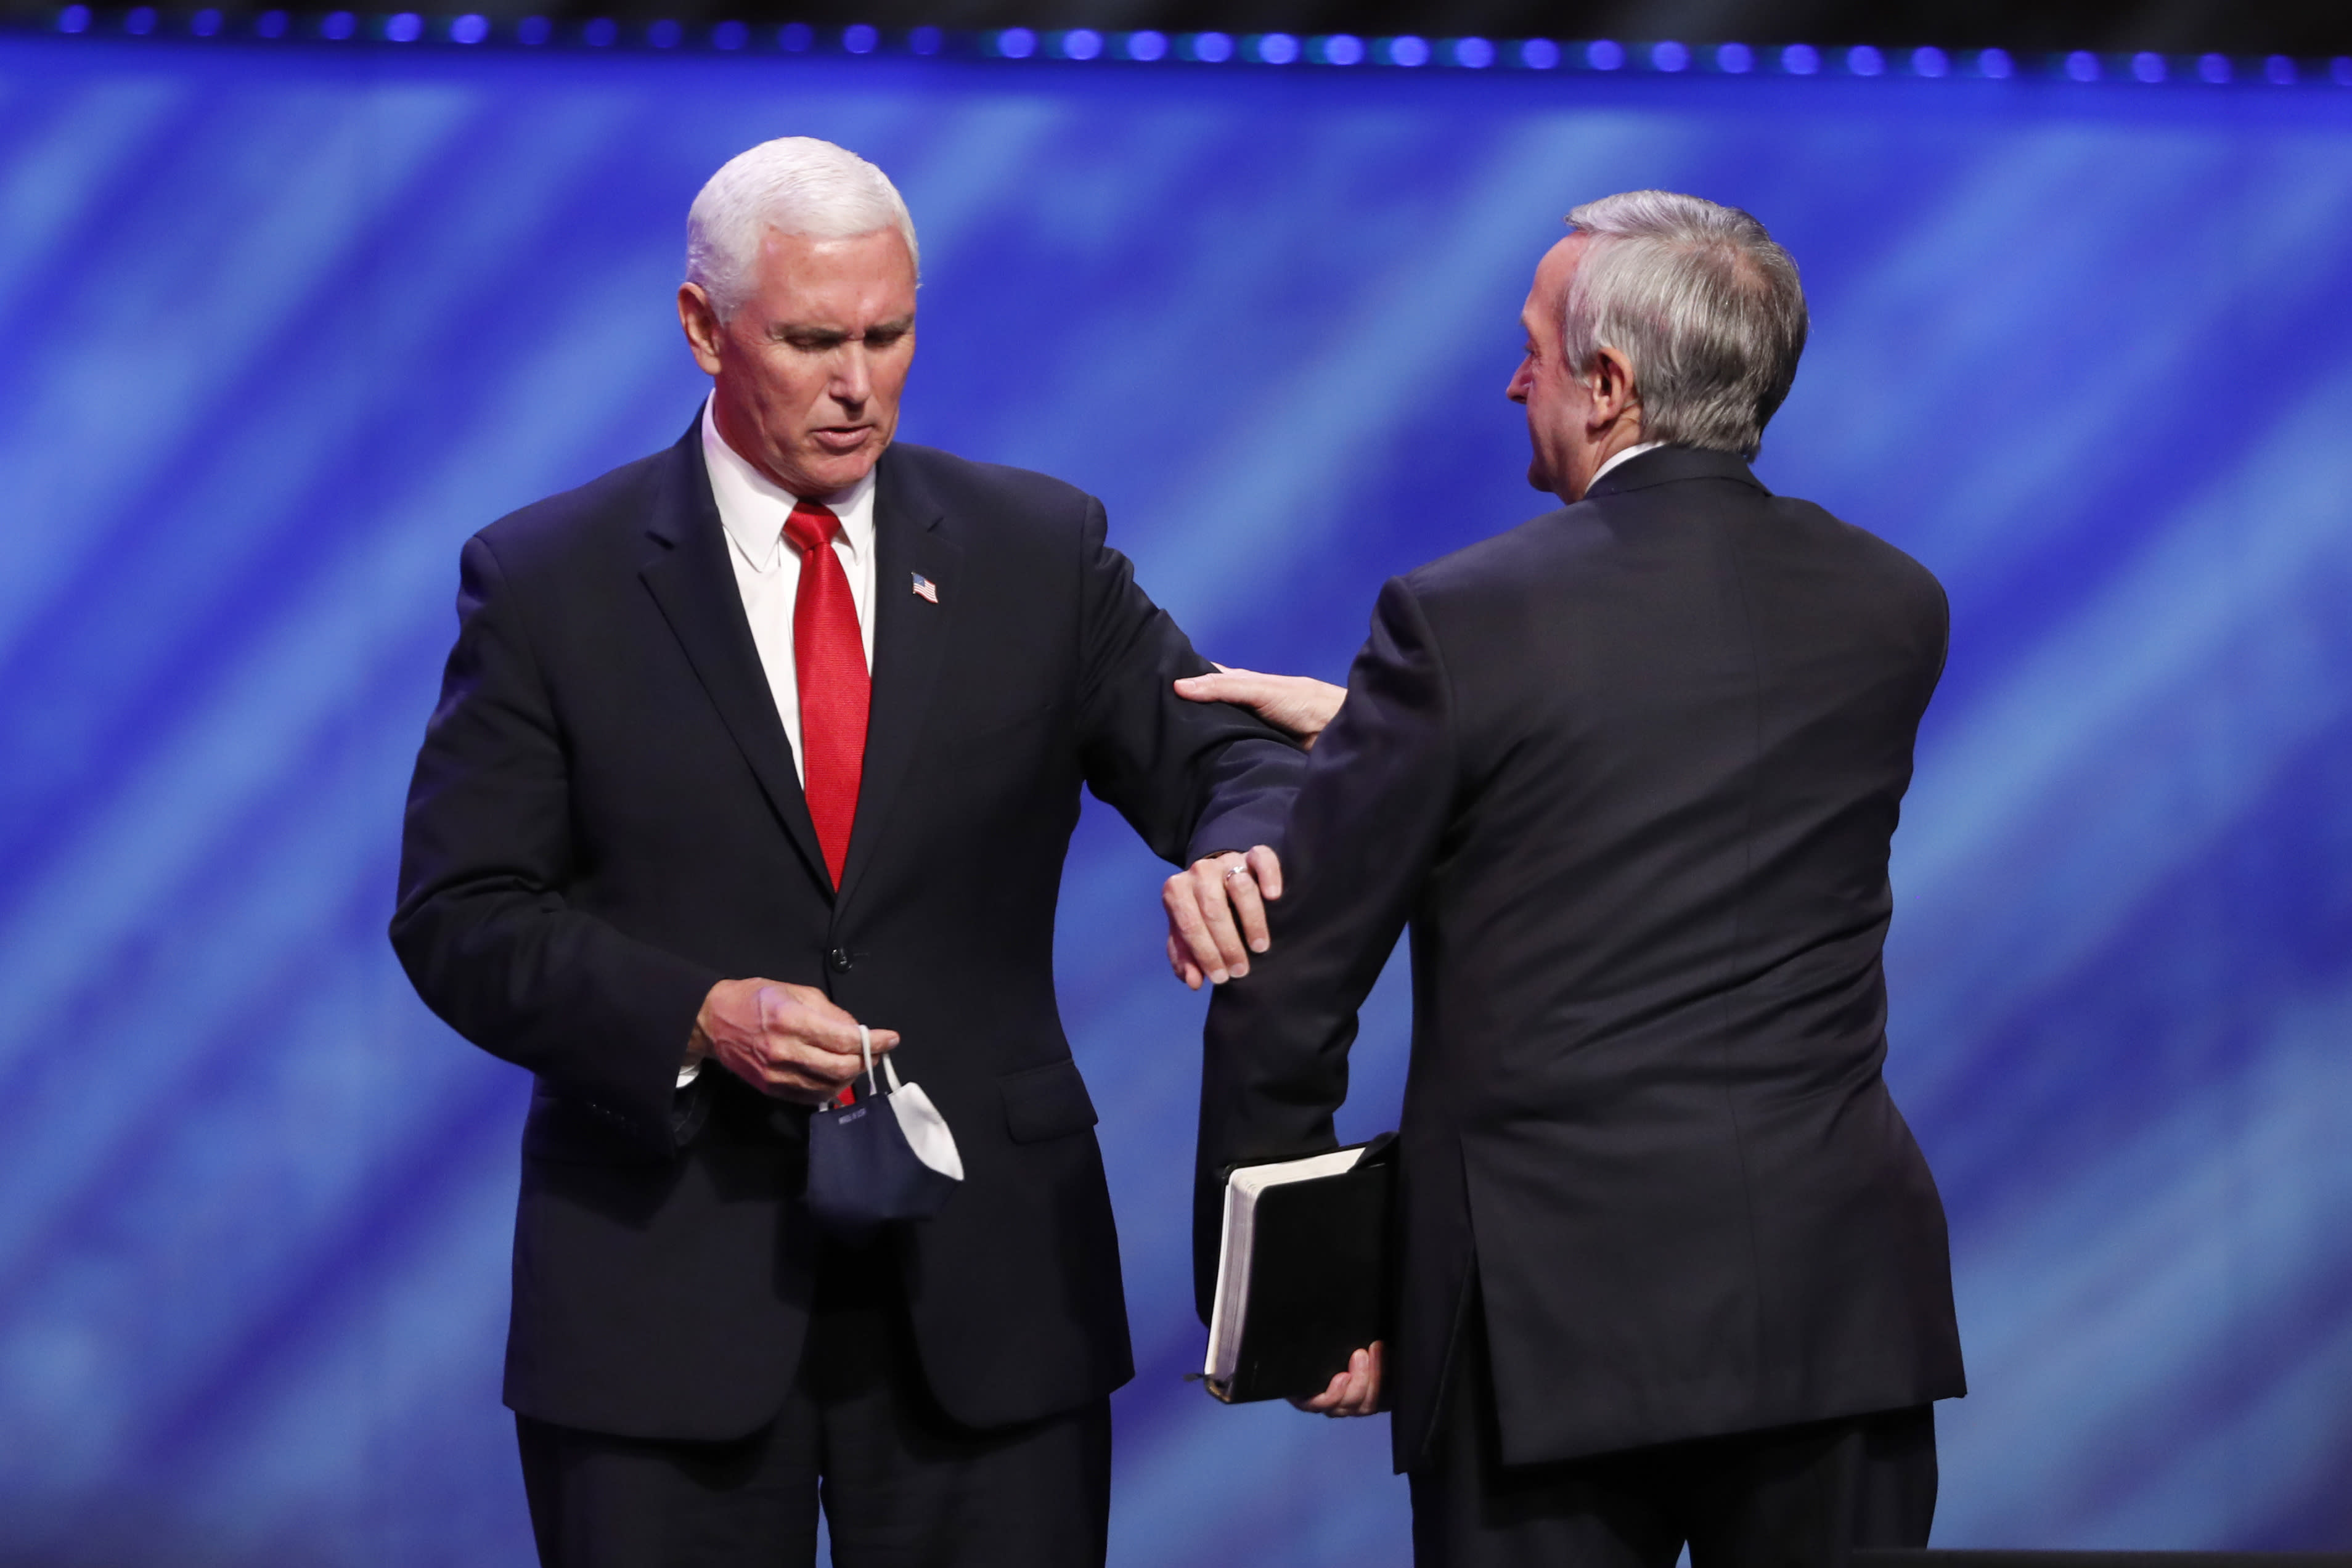 Vice President Mike Pence, left, greets Senior Pastor Dr. Robert Jeffress, right, after Pence spoke at the Southern Baptist megachurch First Baptist Dallas during a Celebrate Freedom Rally in Dallas, Sunday, June 28, 2020. (AP Photo/Tony Gutierrez)